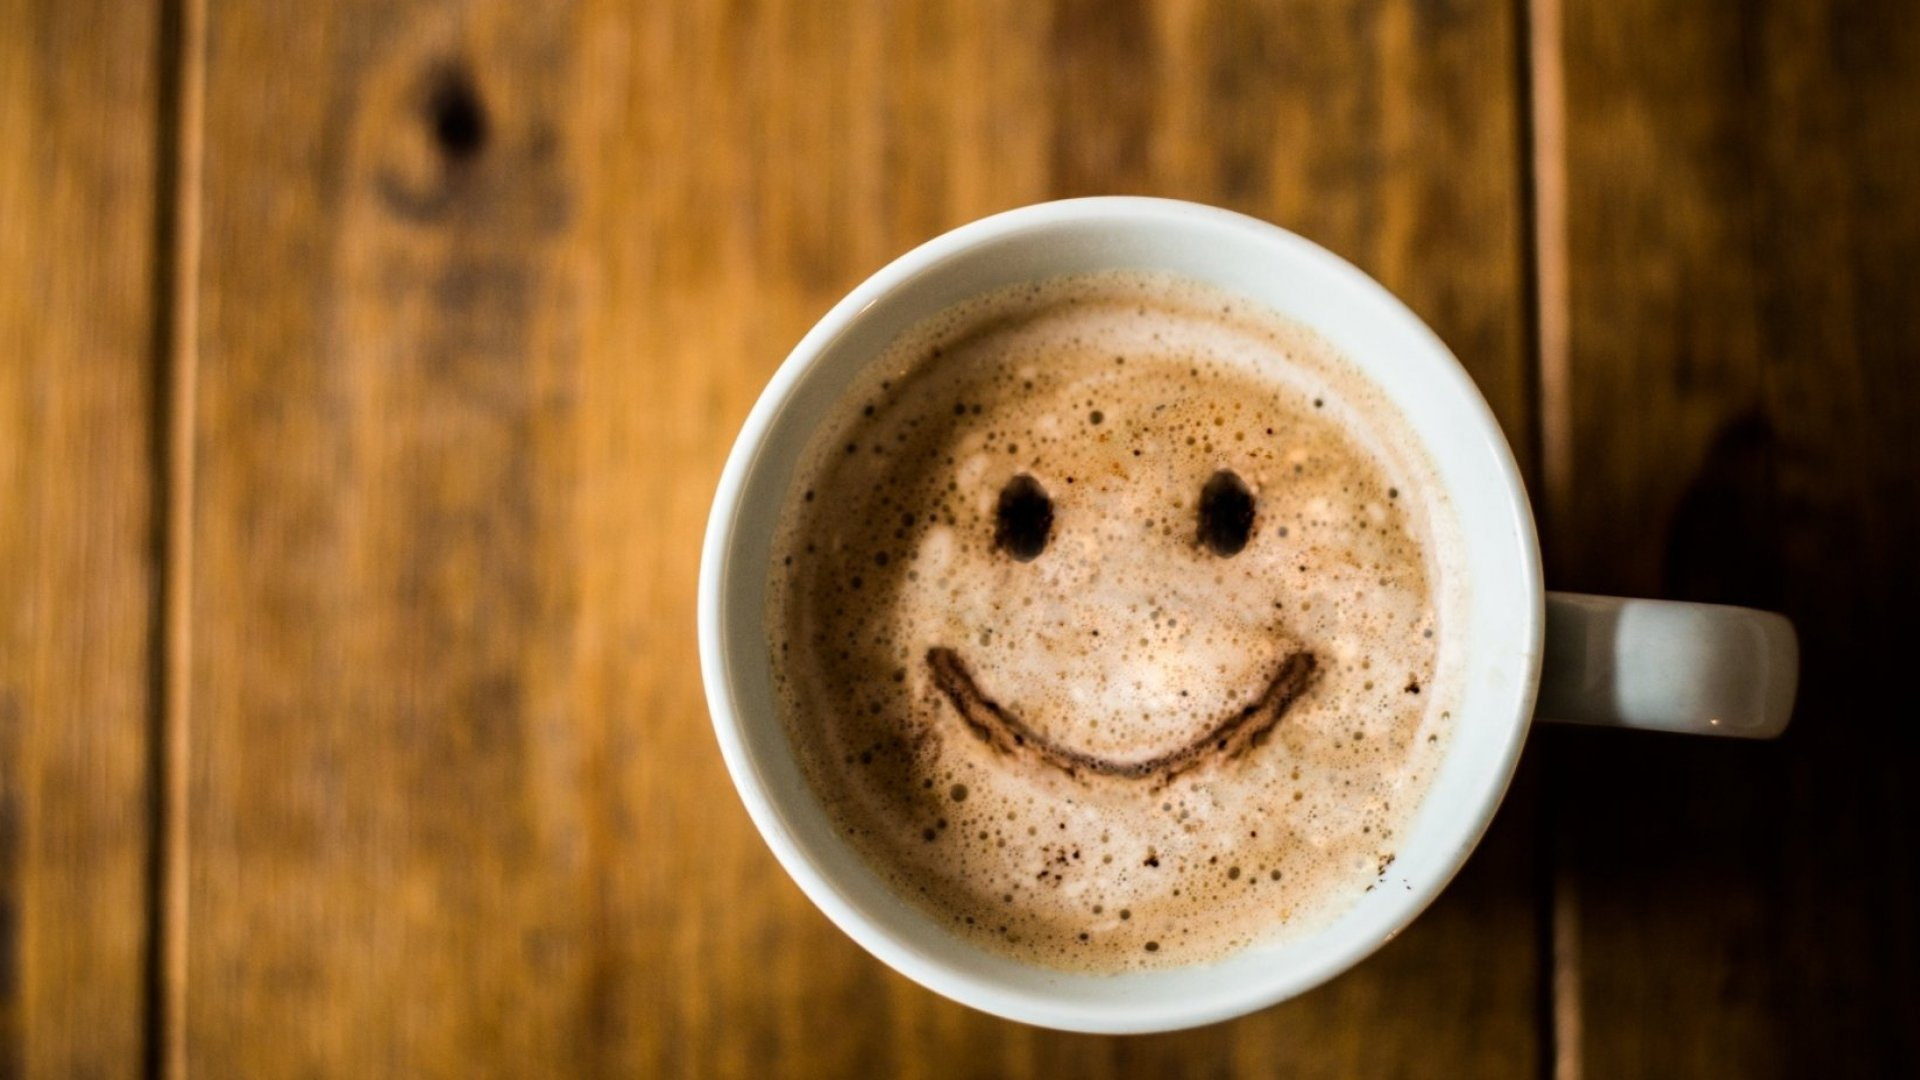 8 Proven Ways to Be Happier, According to Science